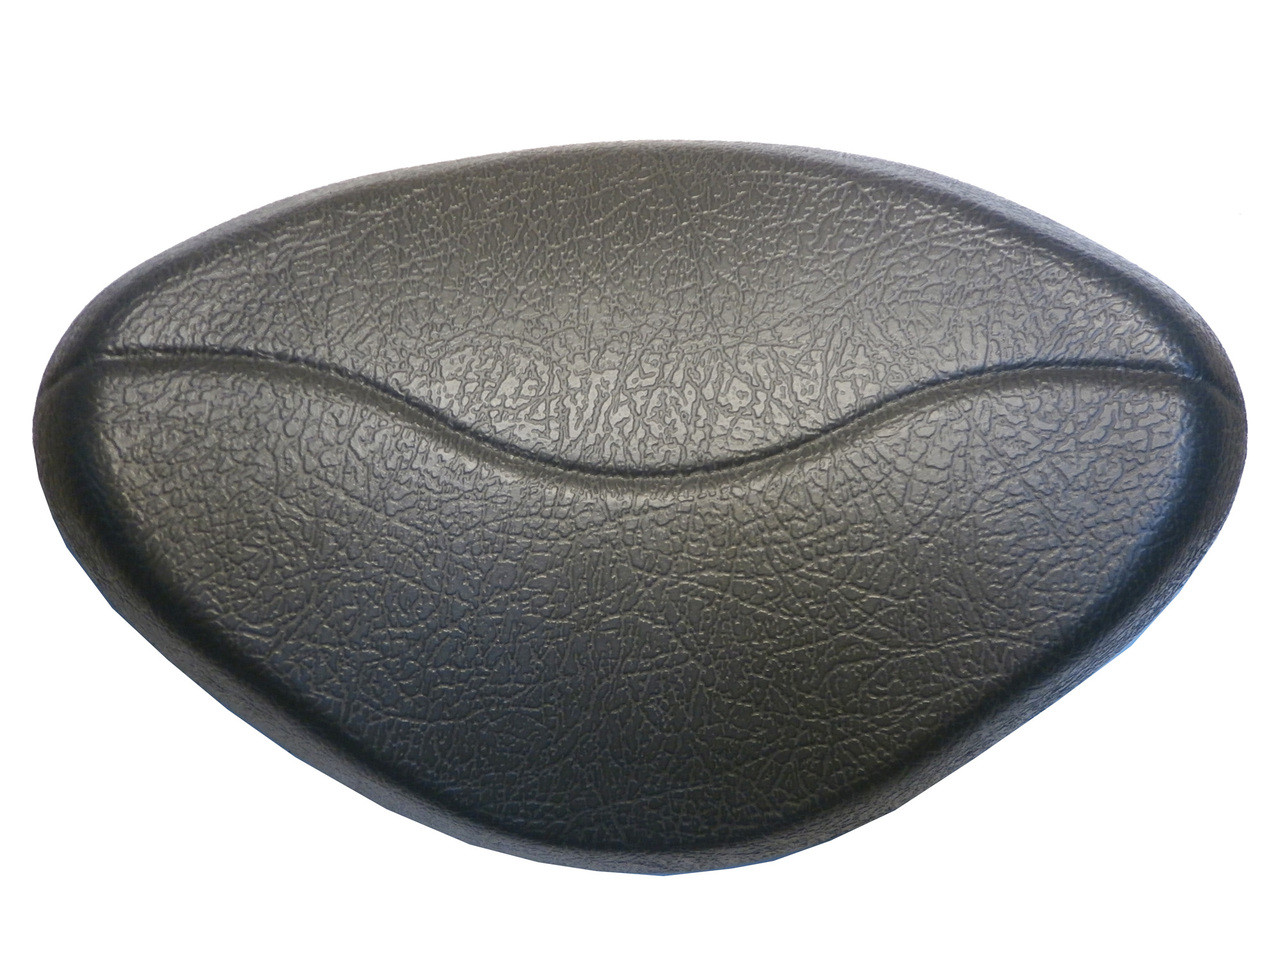 Master Spa - X540762 - Oval Warped Charcoal Pillow- Front View